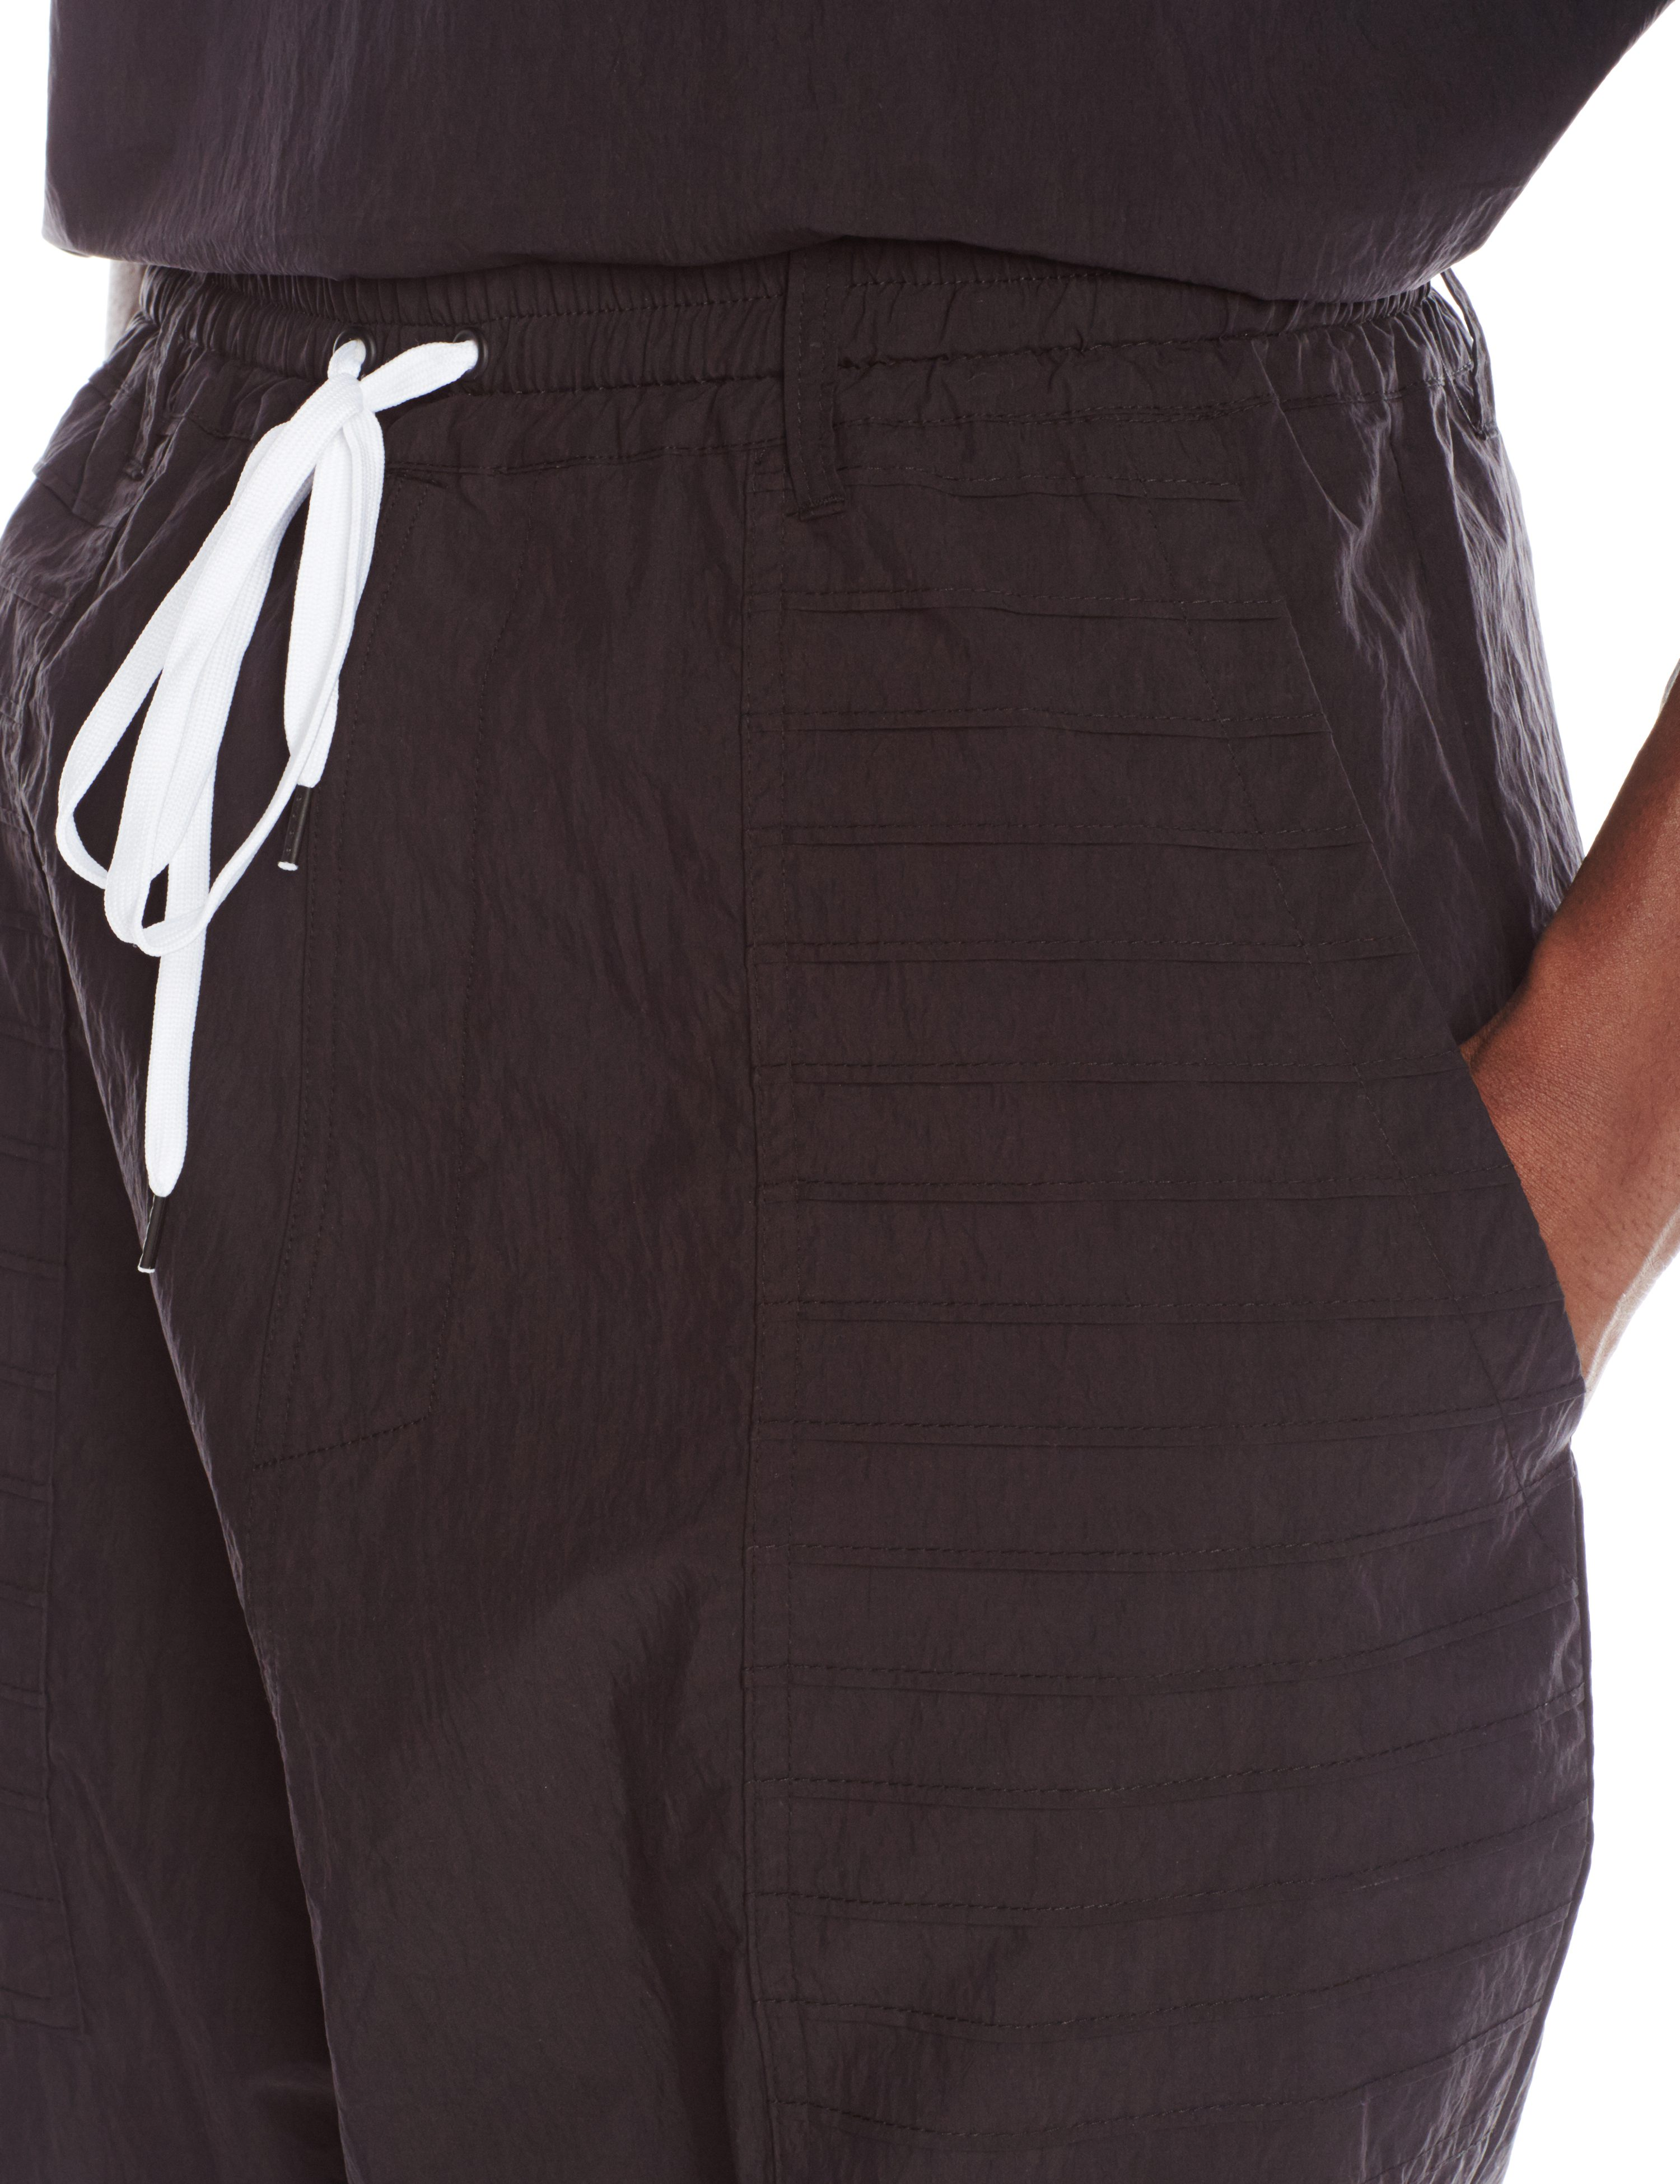 DETAIL01-DROP PANT 2.0 BLACK.0743